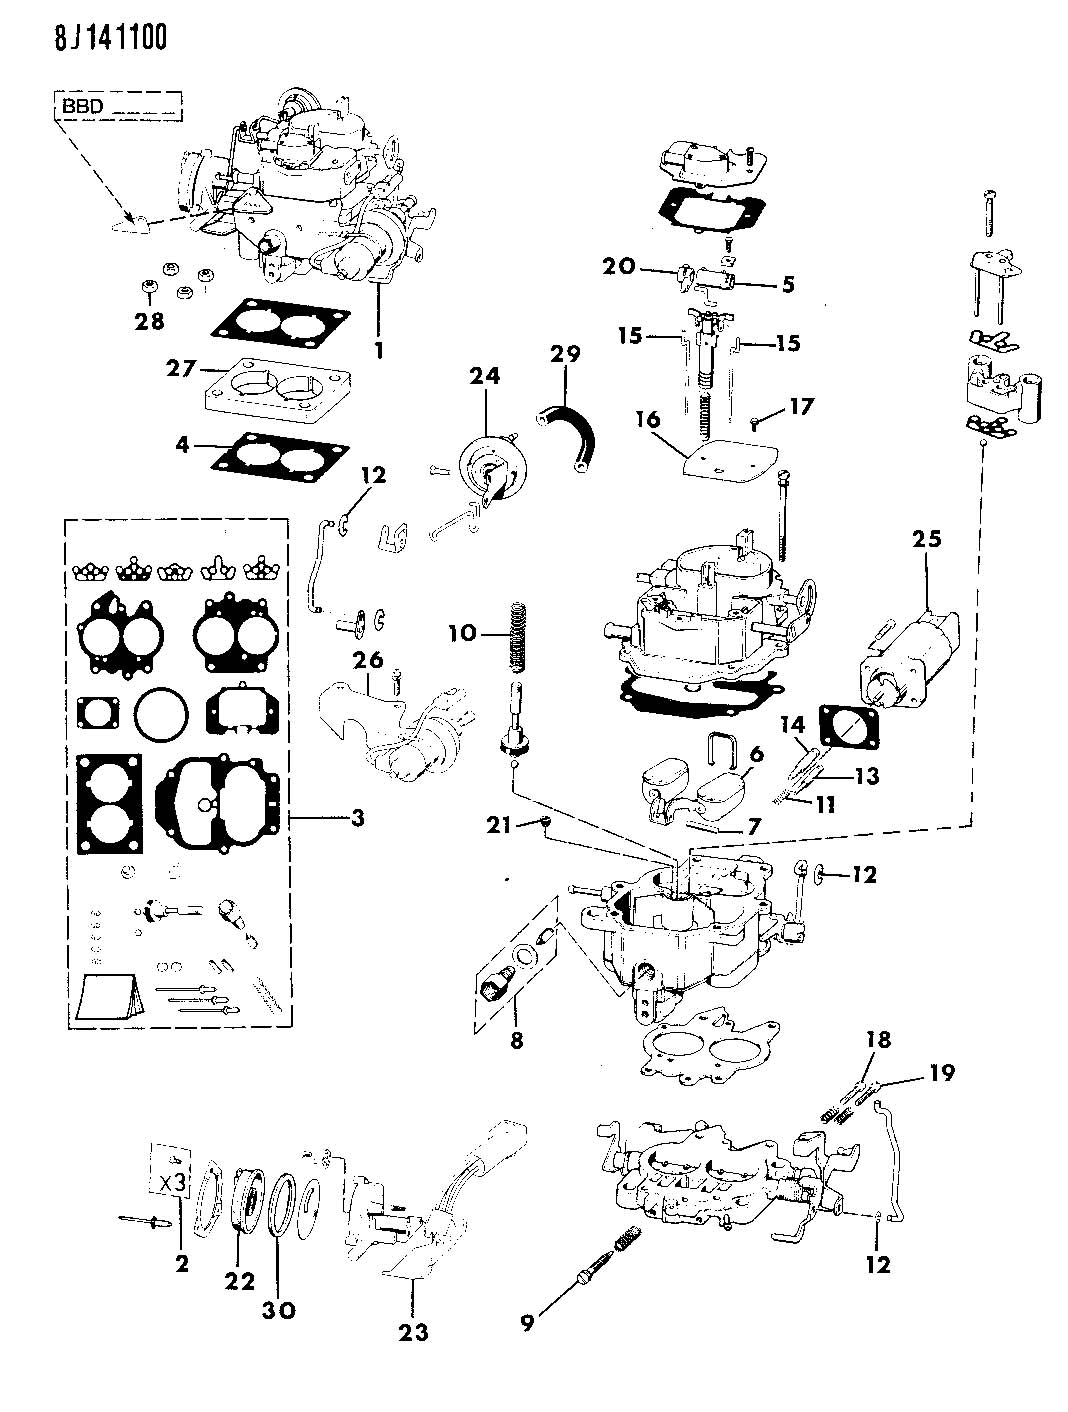 4 2l engine diagram wiring library 1991 Jeep Cherokee Radiator 1987 jeep wrangler 4 2l engine diagram 1987 free engine kotaksurat co 1990 jeep wrangler parts